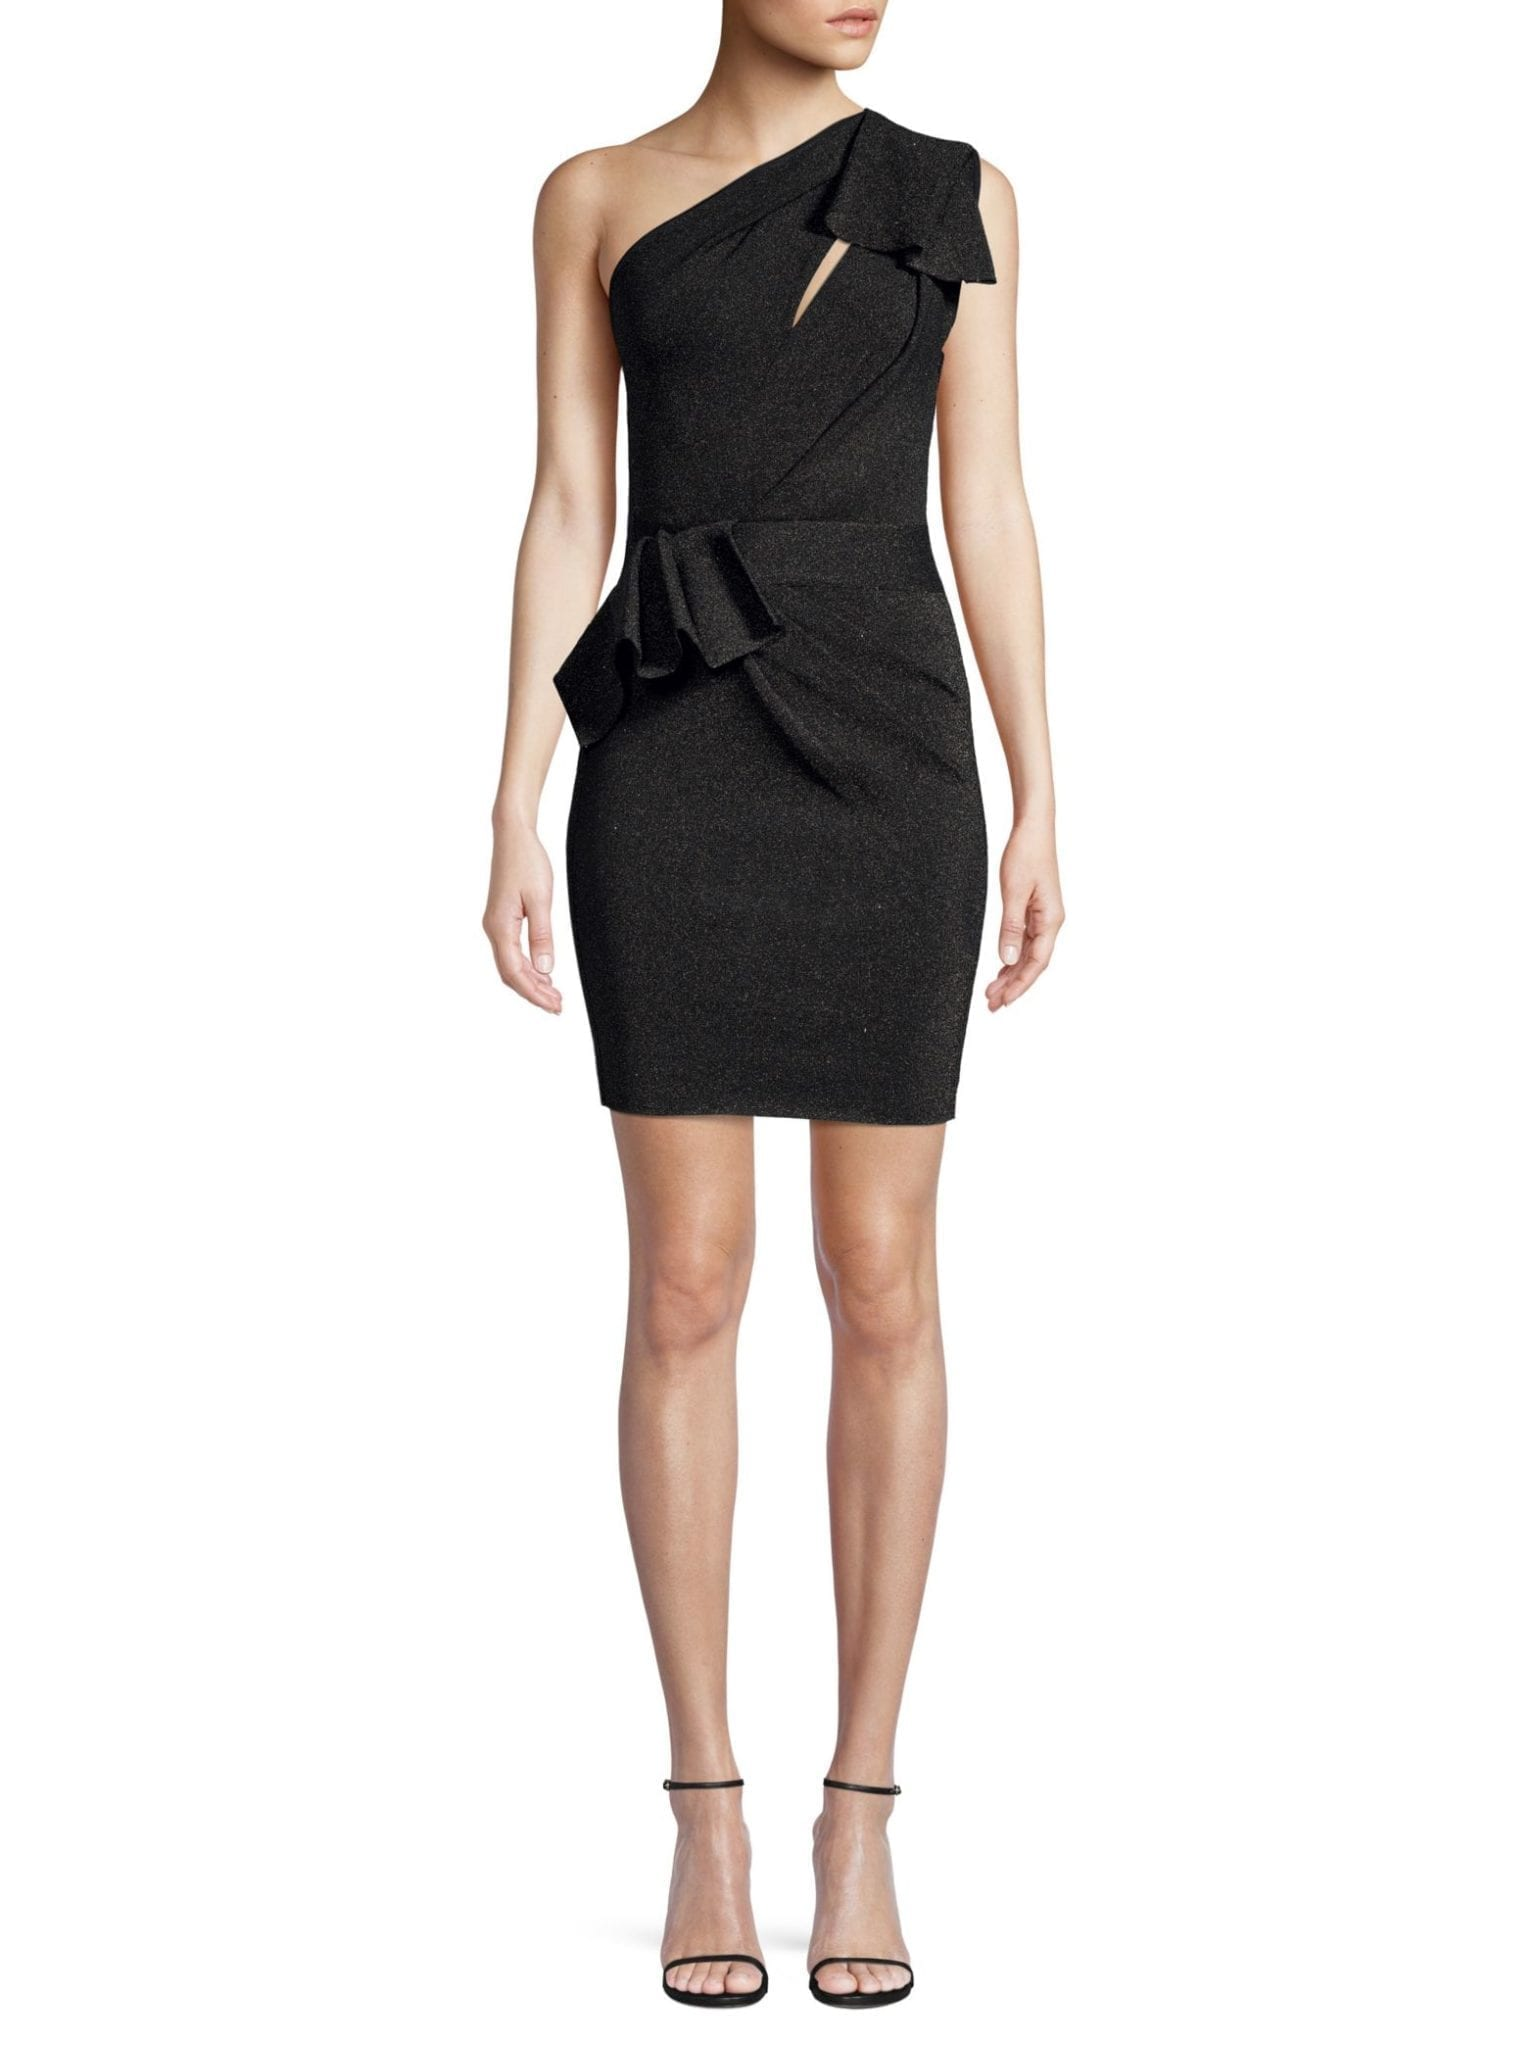 4ea63f3489d4 HERVE LEGER One-Shoulder Cocktail Black Dress - We Select Dresses